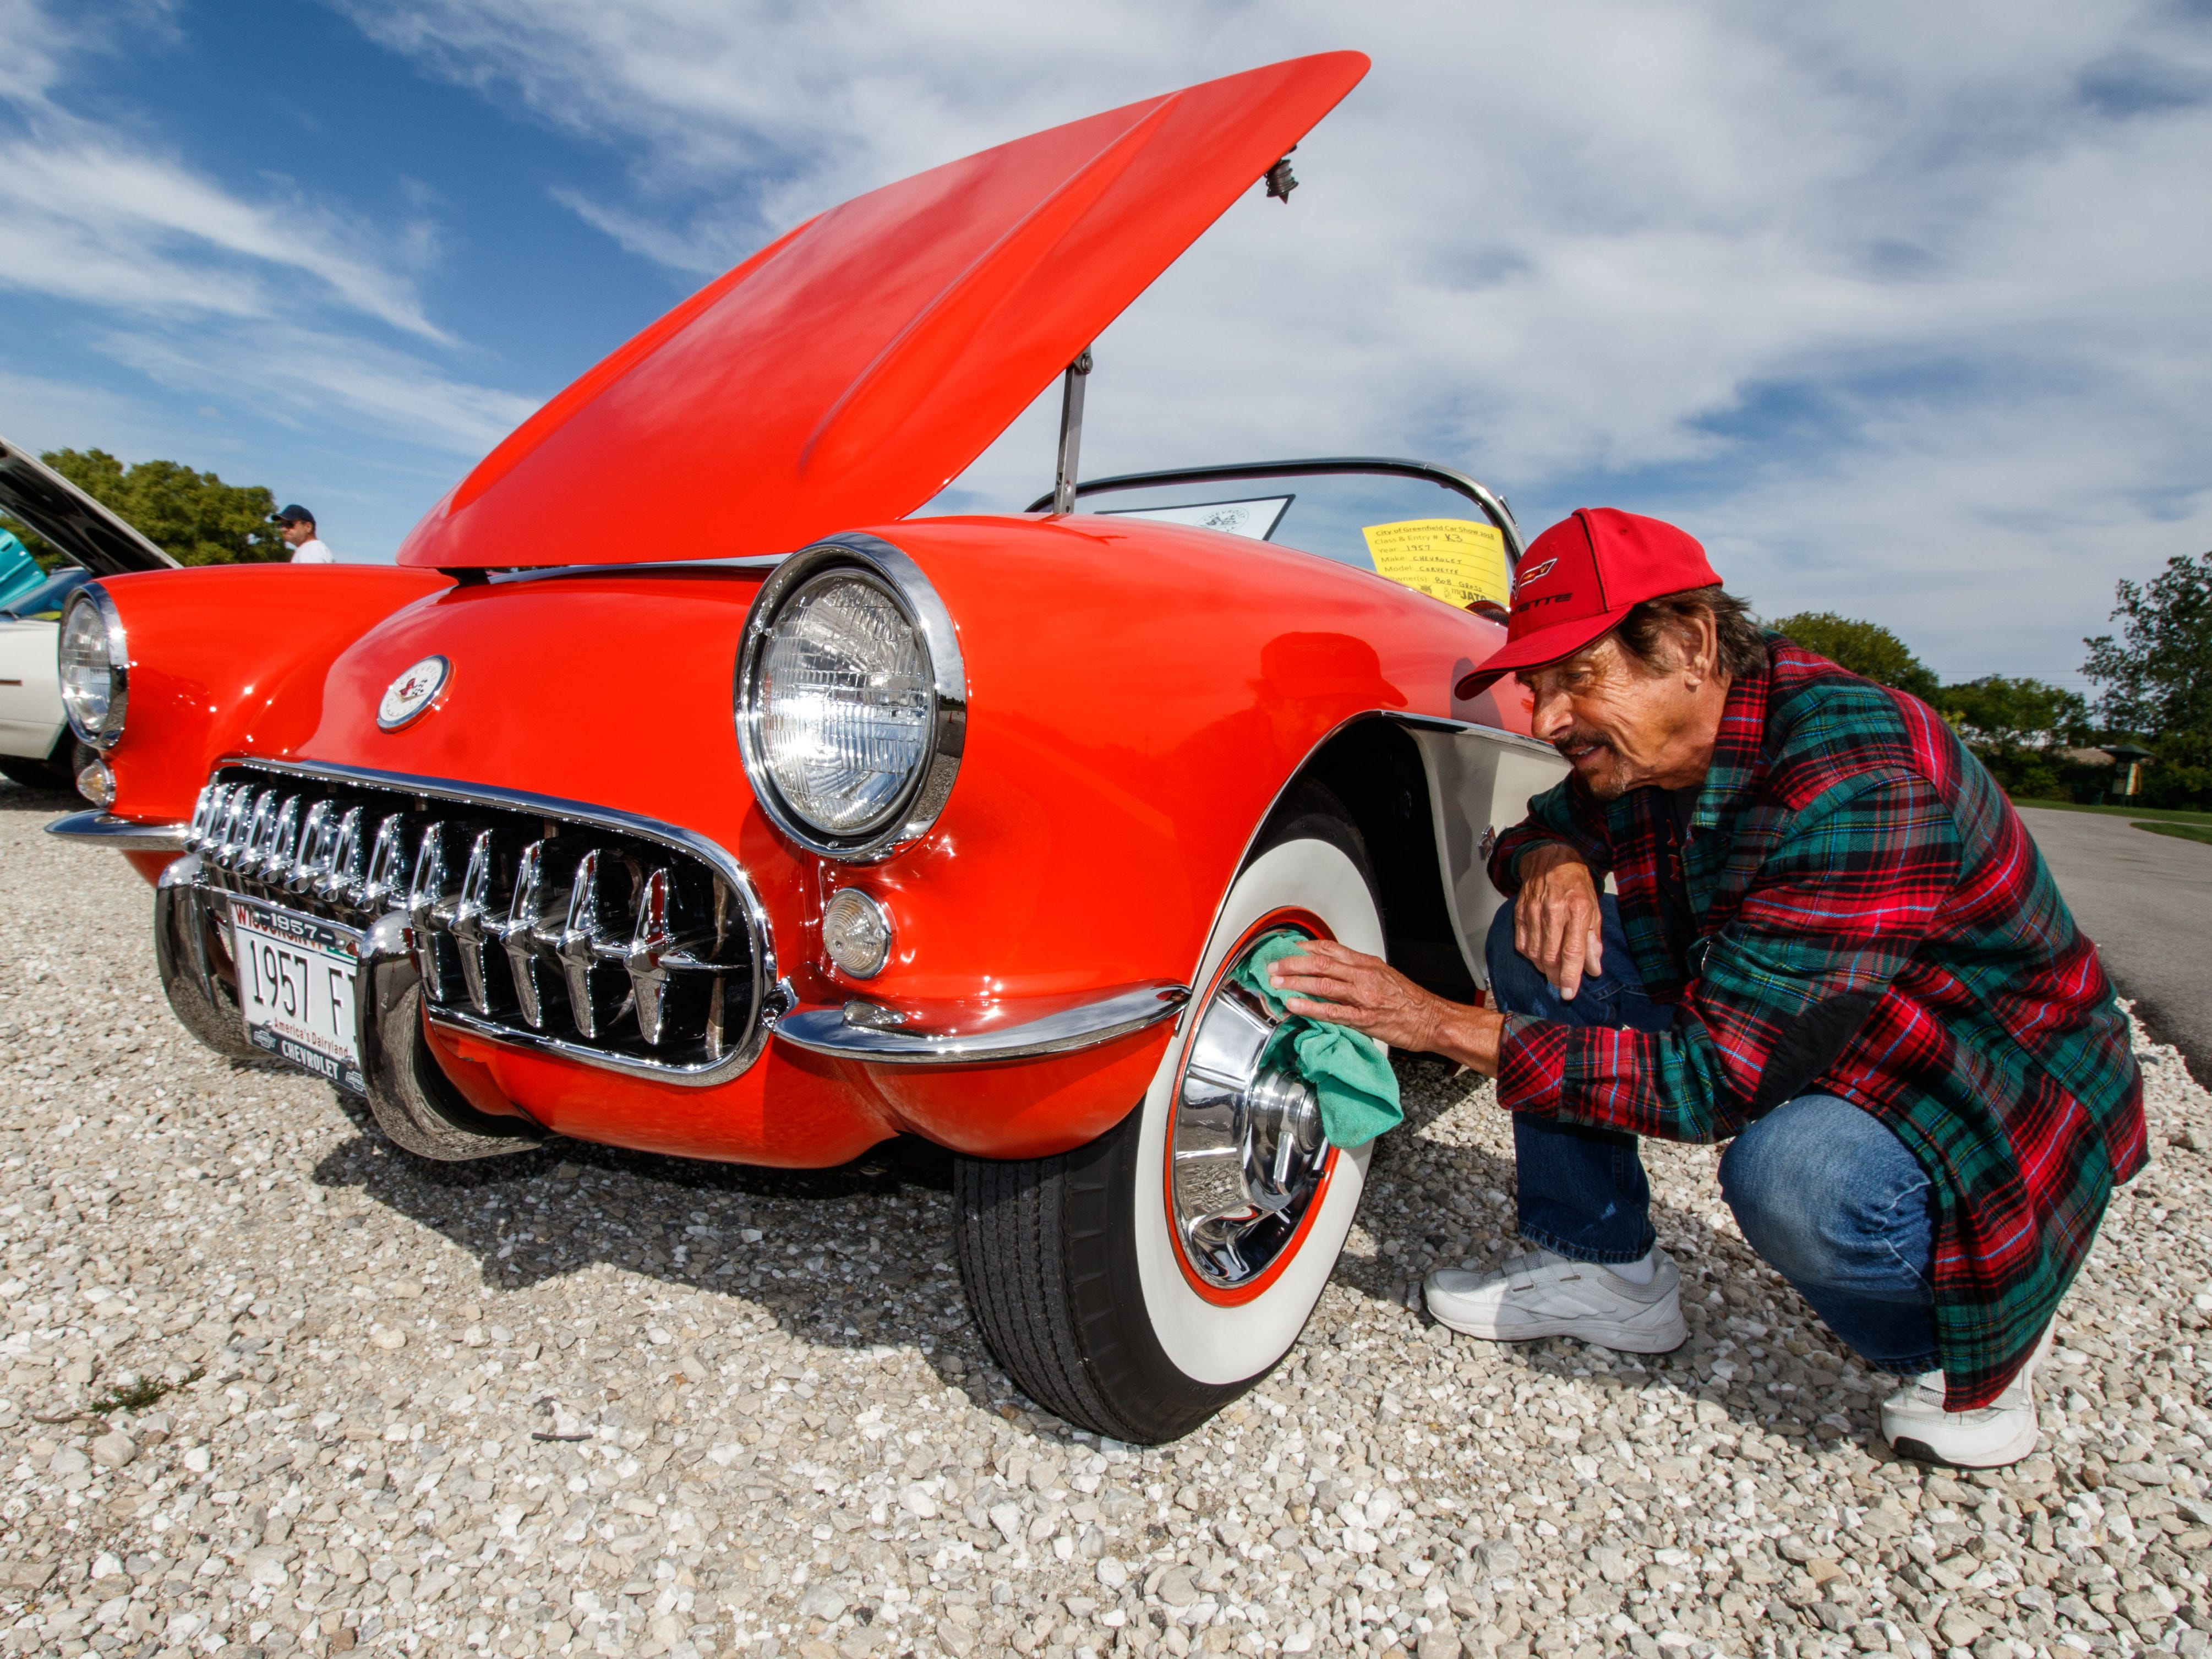 Bob Gross of New Berlin adds a last minute shine to his immaculate 1957 Chevrolet Corvette during the City of Greenfield's 2nd annual Car Show in Konkel Park on Saturday, Sept. 8, 2018.